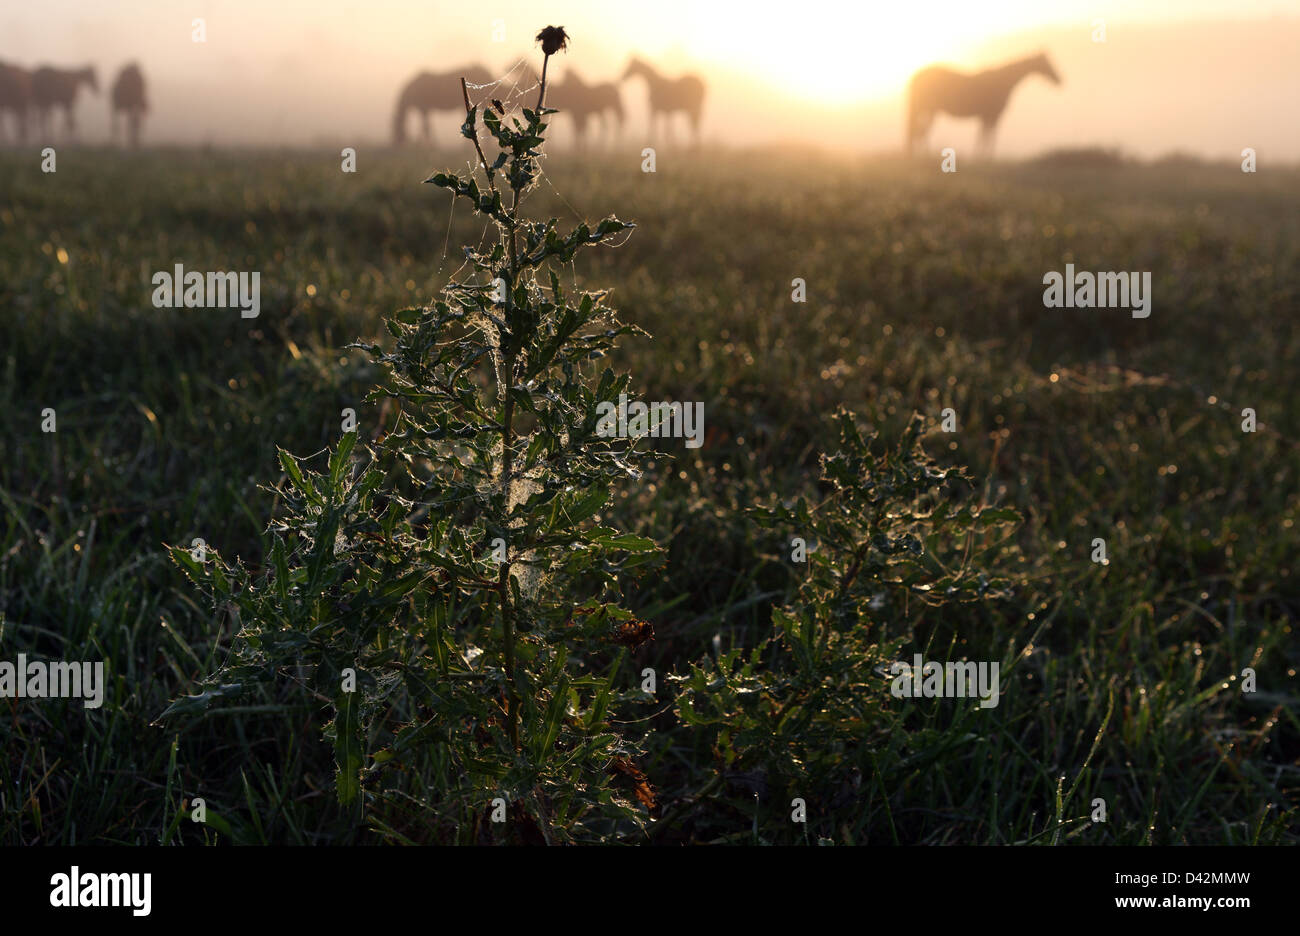 Görlsdorf, Germany, thistle and horses on pasture at sunrise - Stock Image